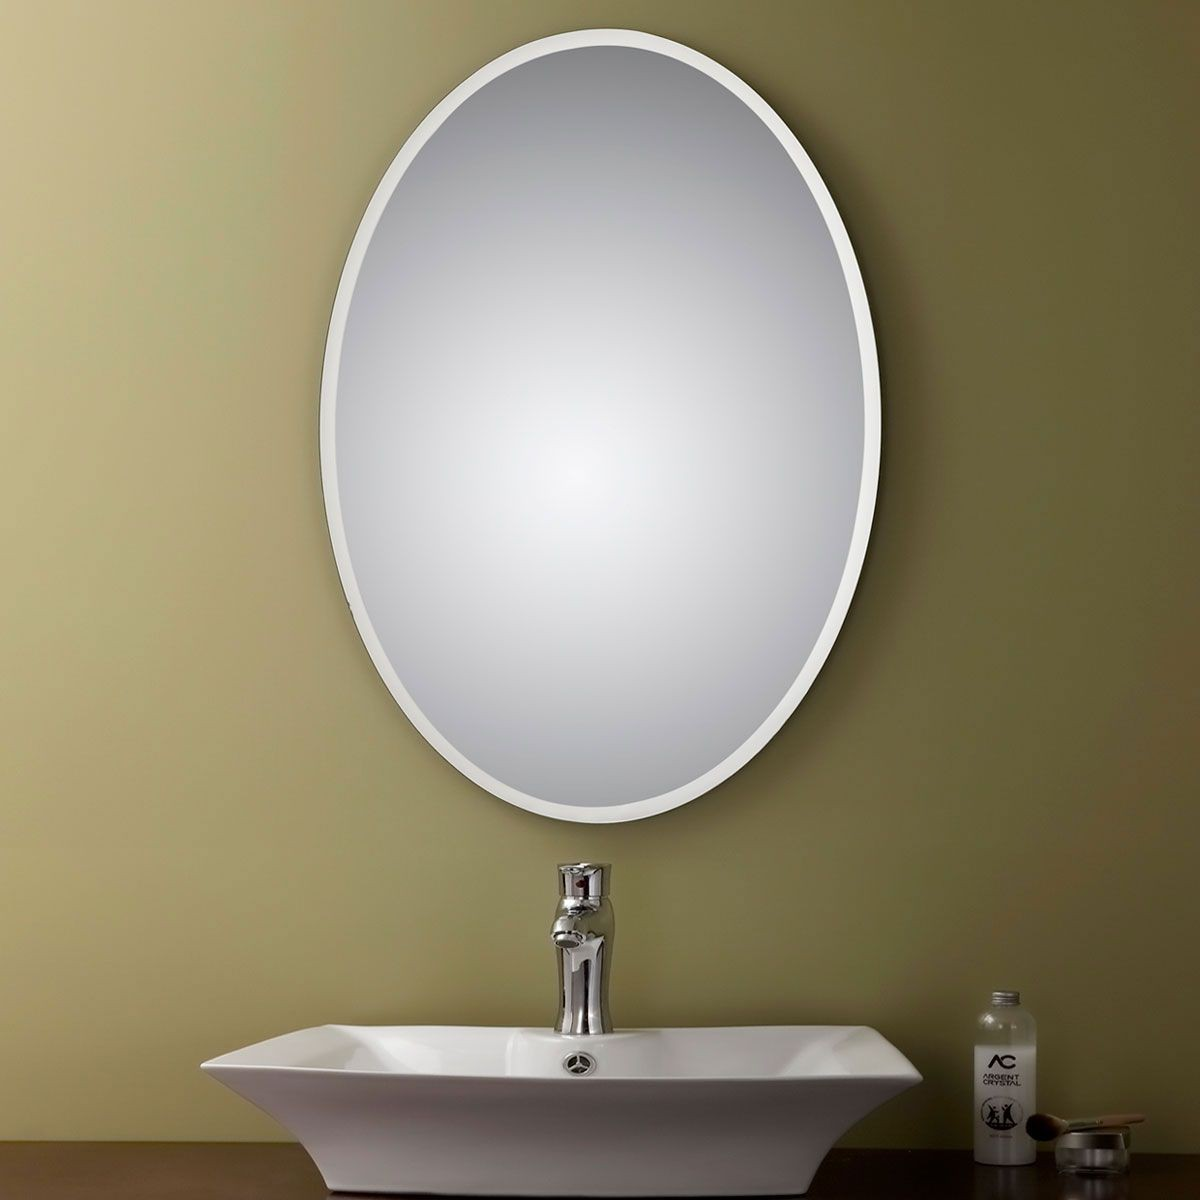 23 x 31 in unframed bathroom silvered oval mirror - Miroir salle de bain chauffant ...